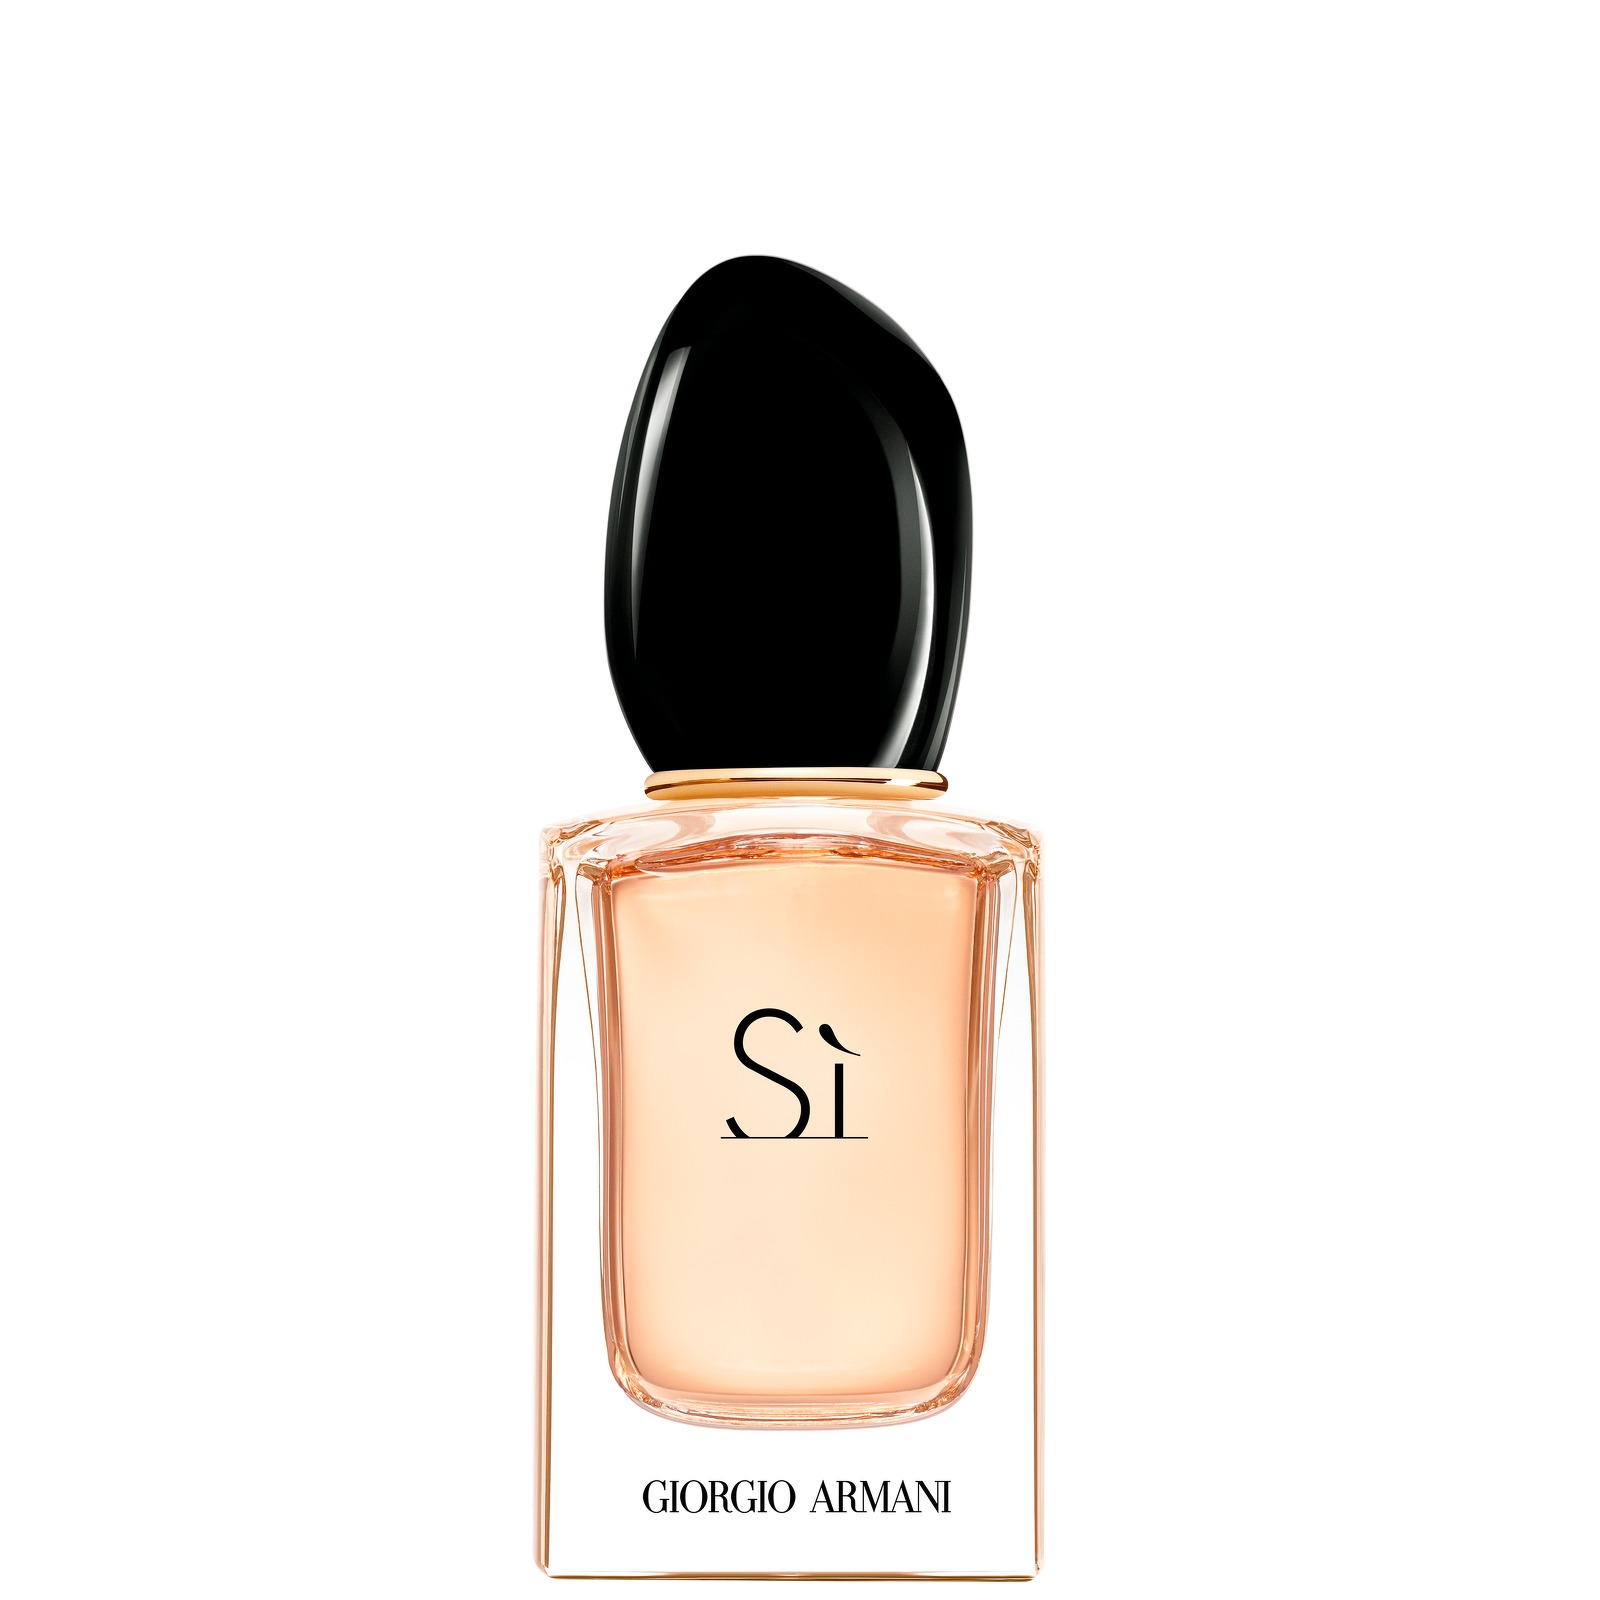 Armani Si Eau de Parfum Spray 30ml